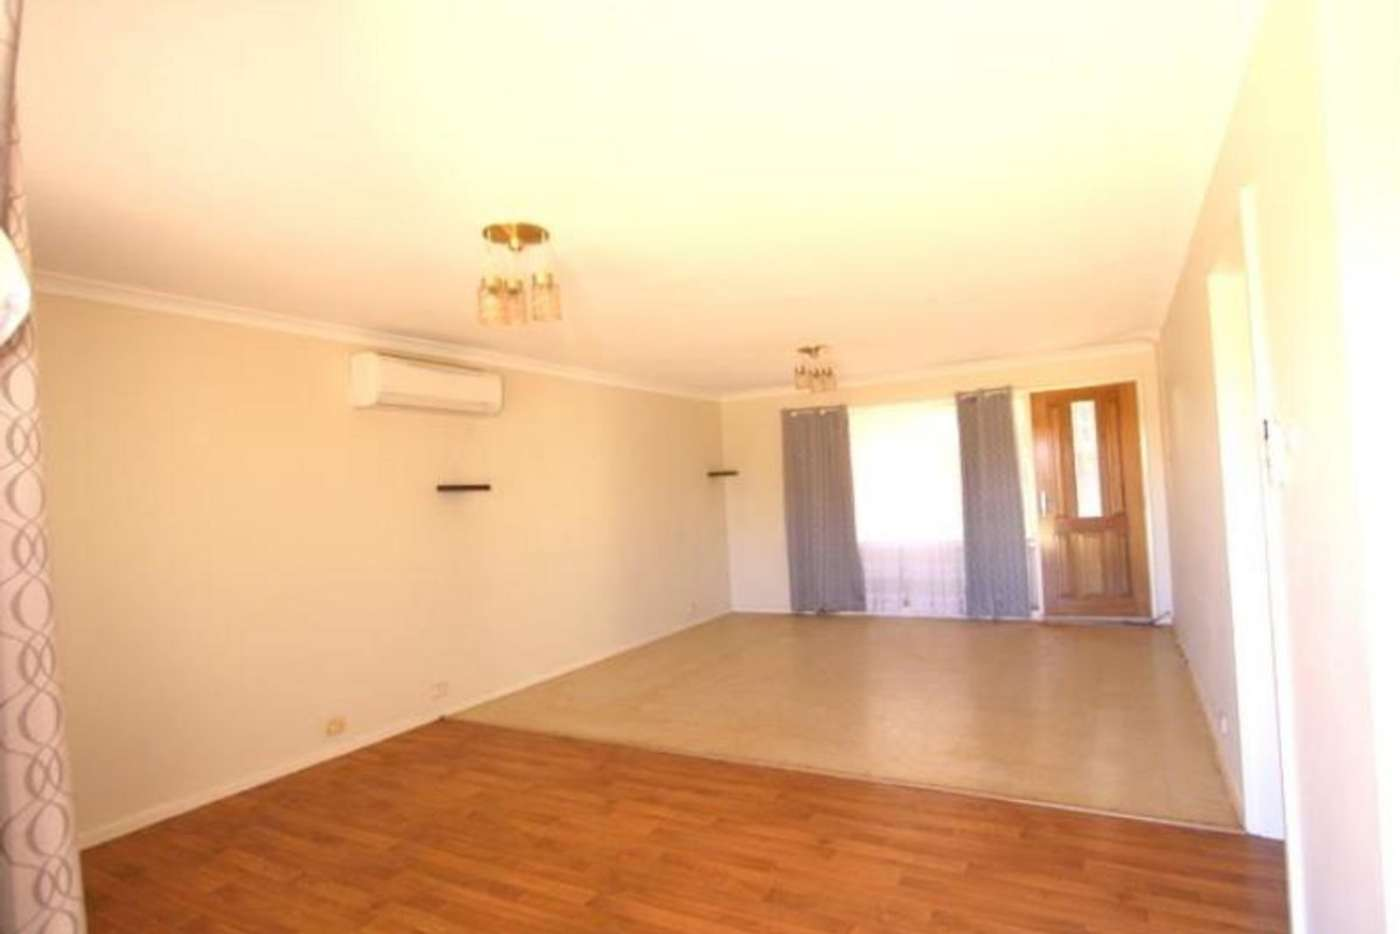 Sixth view of Homely house listing, 31 Acacia Way, South Hedland WA 6722